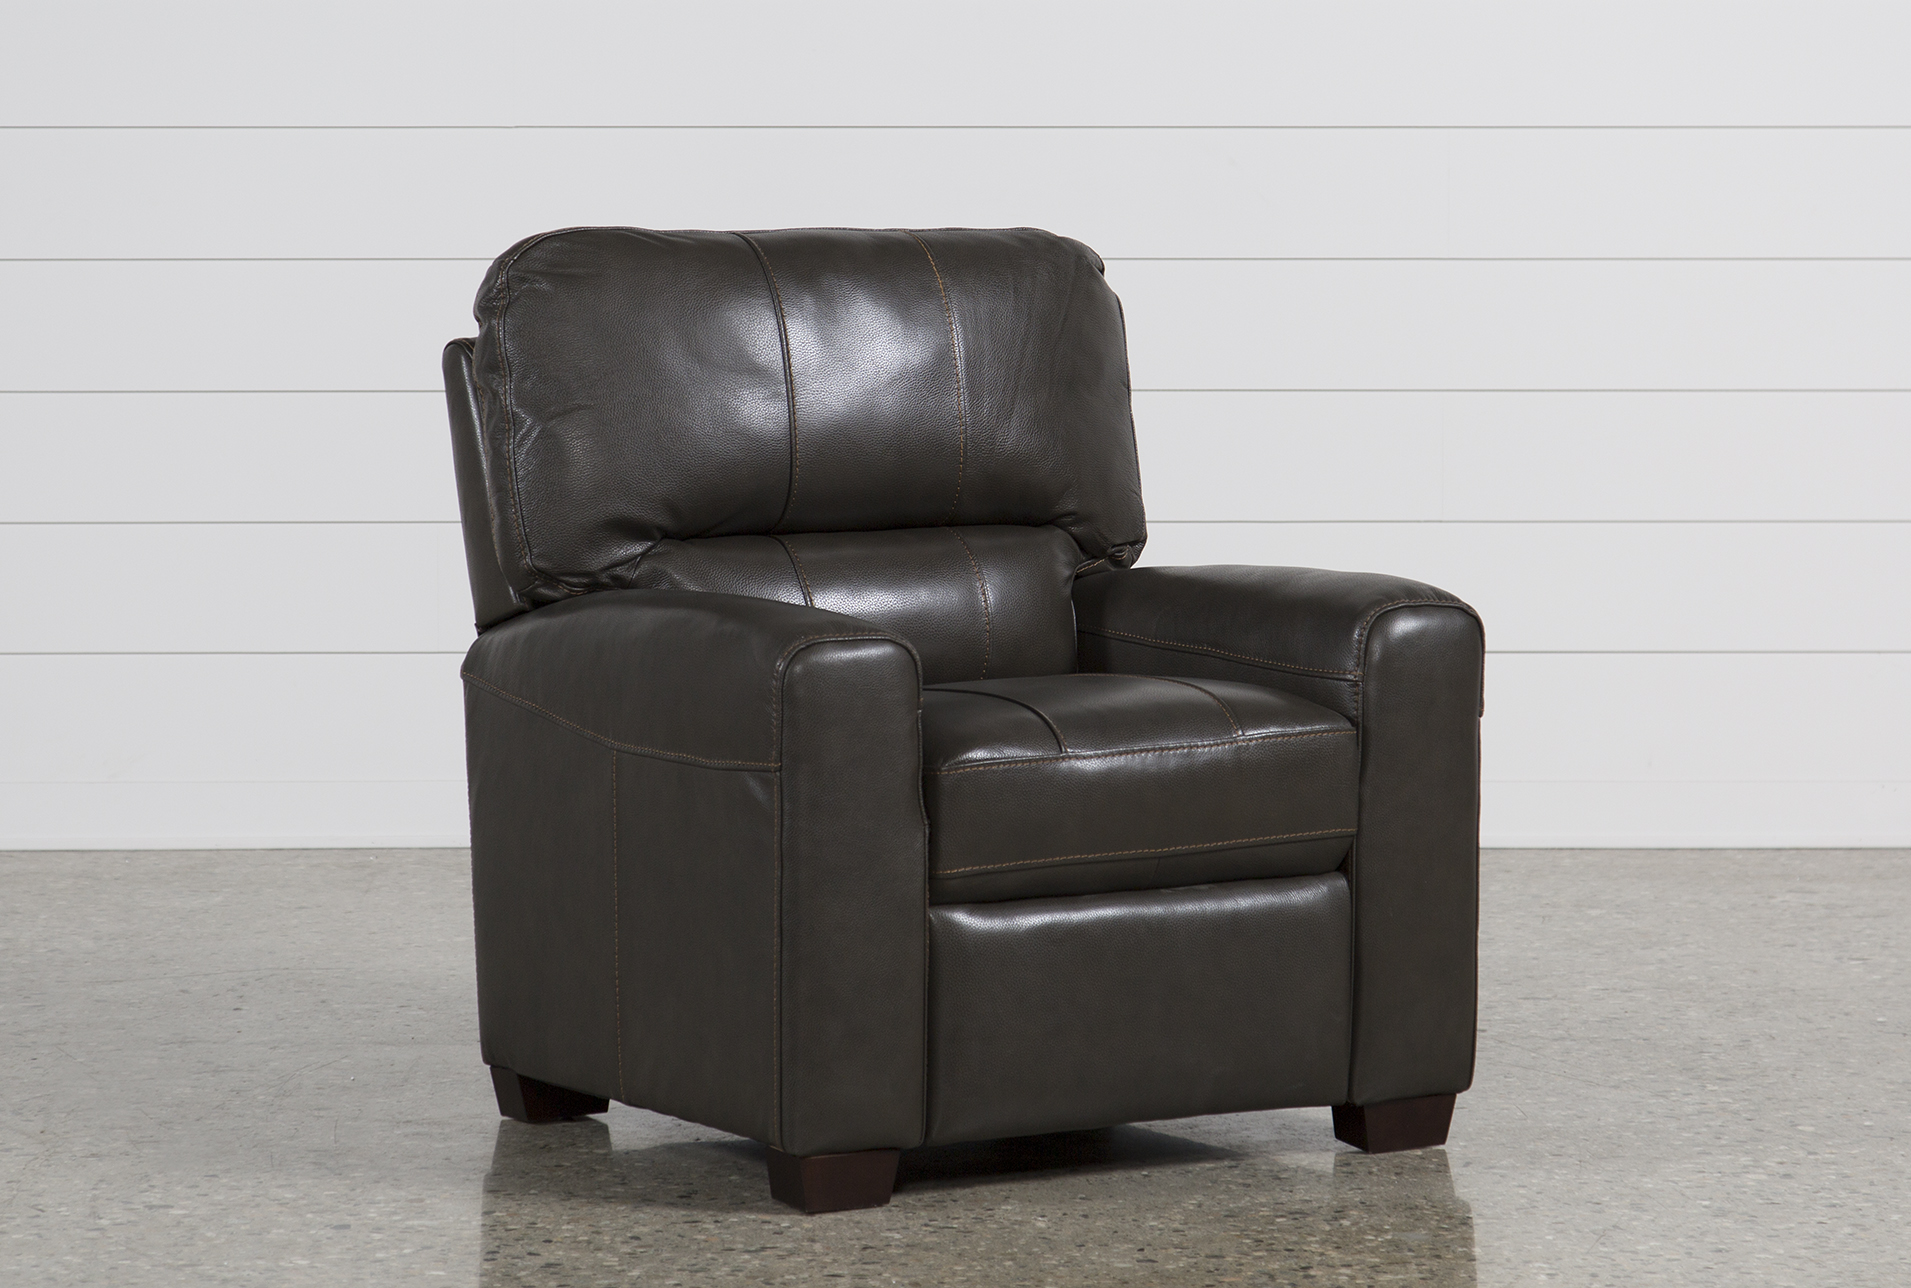 Andrew Leather Recliner (Qty: 1) Has Been Successfully Added To Your Cart.